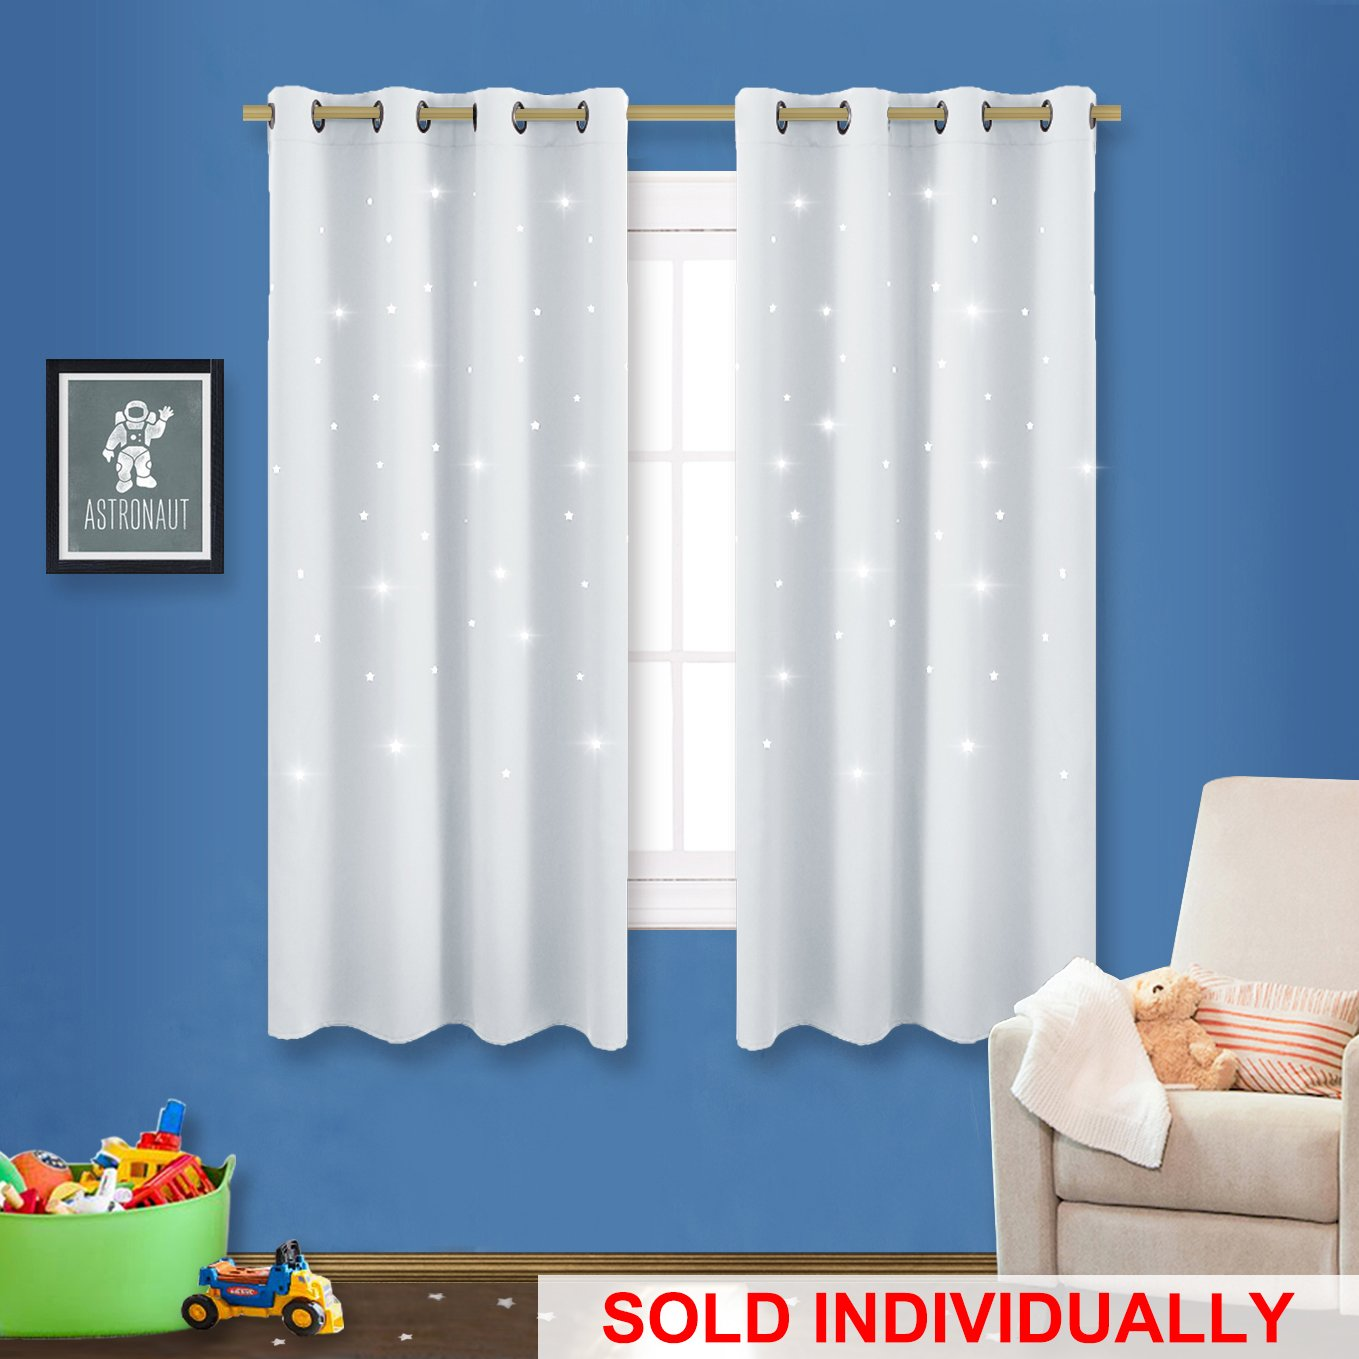 NICETOWN Room Darkening Curtain Panel - Zodiac Constellation Drape with Star Cut Out Design